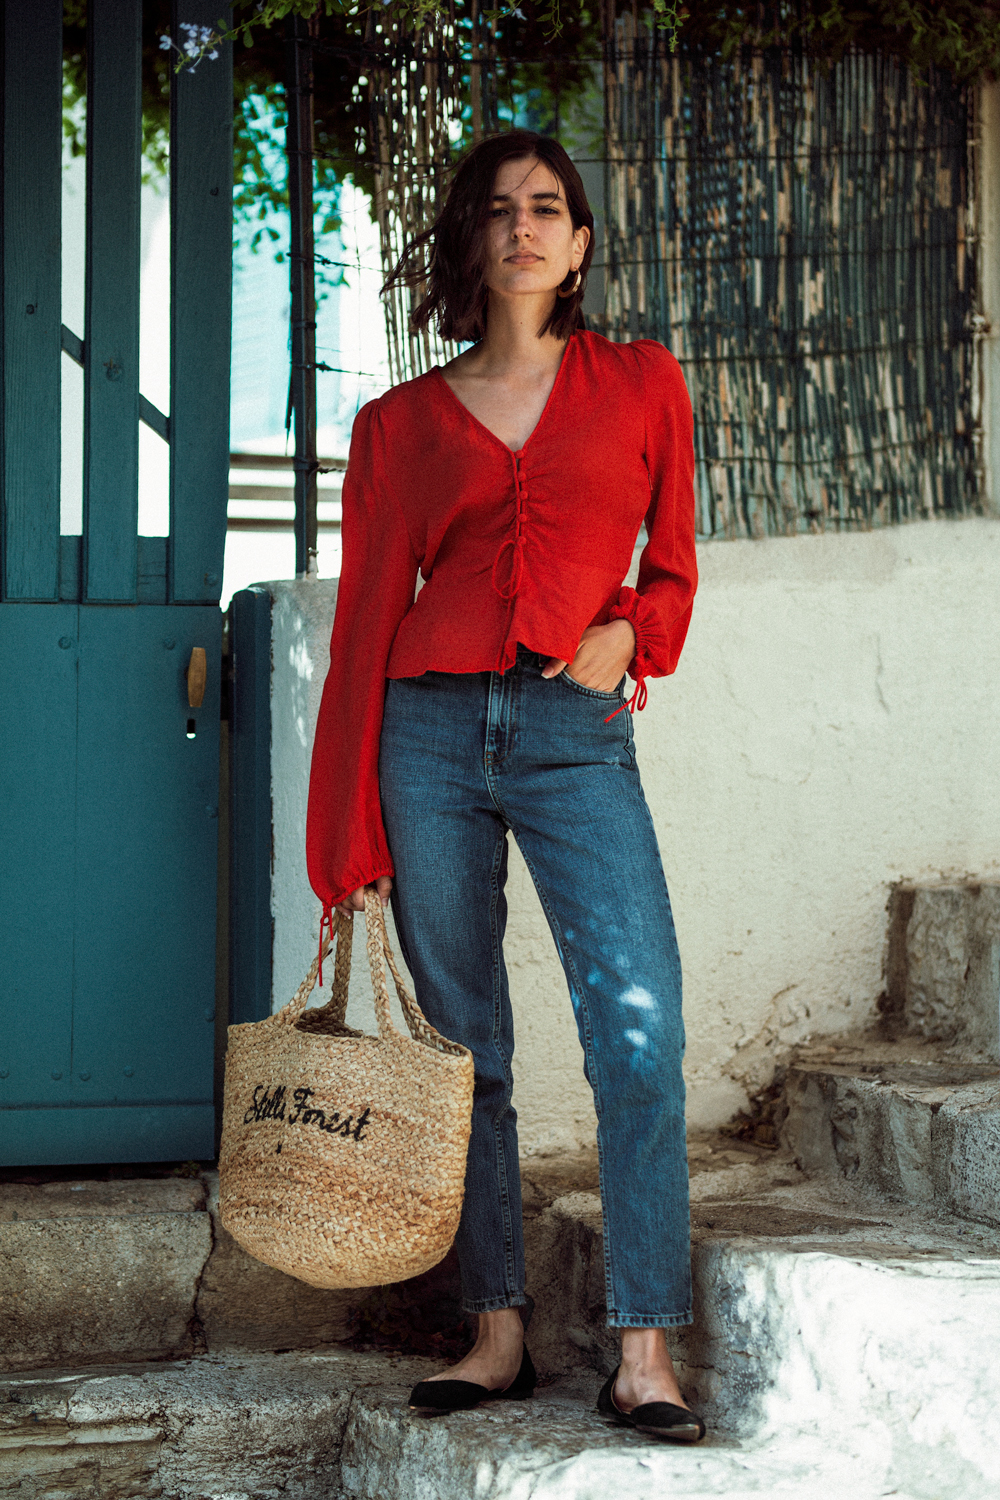 A foolproof outfit formula for the end of summer